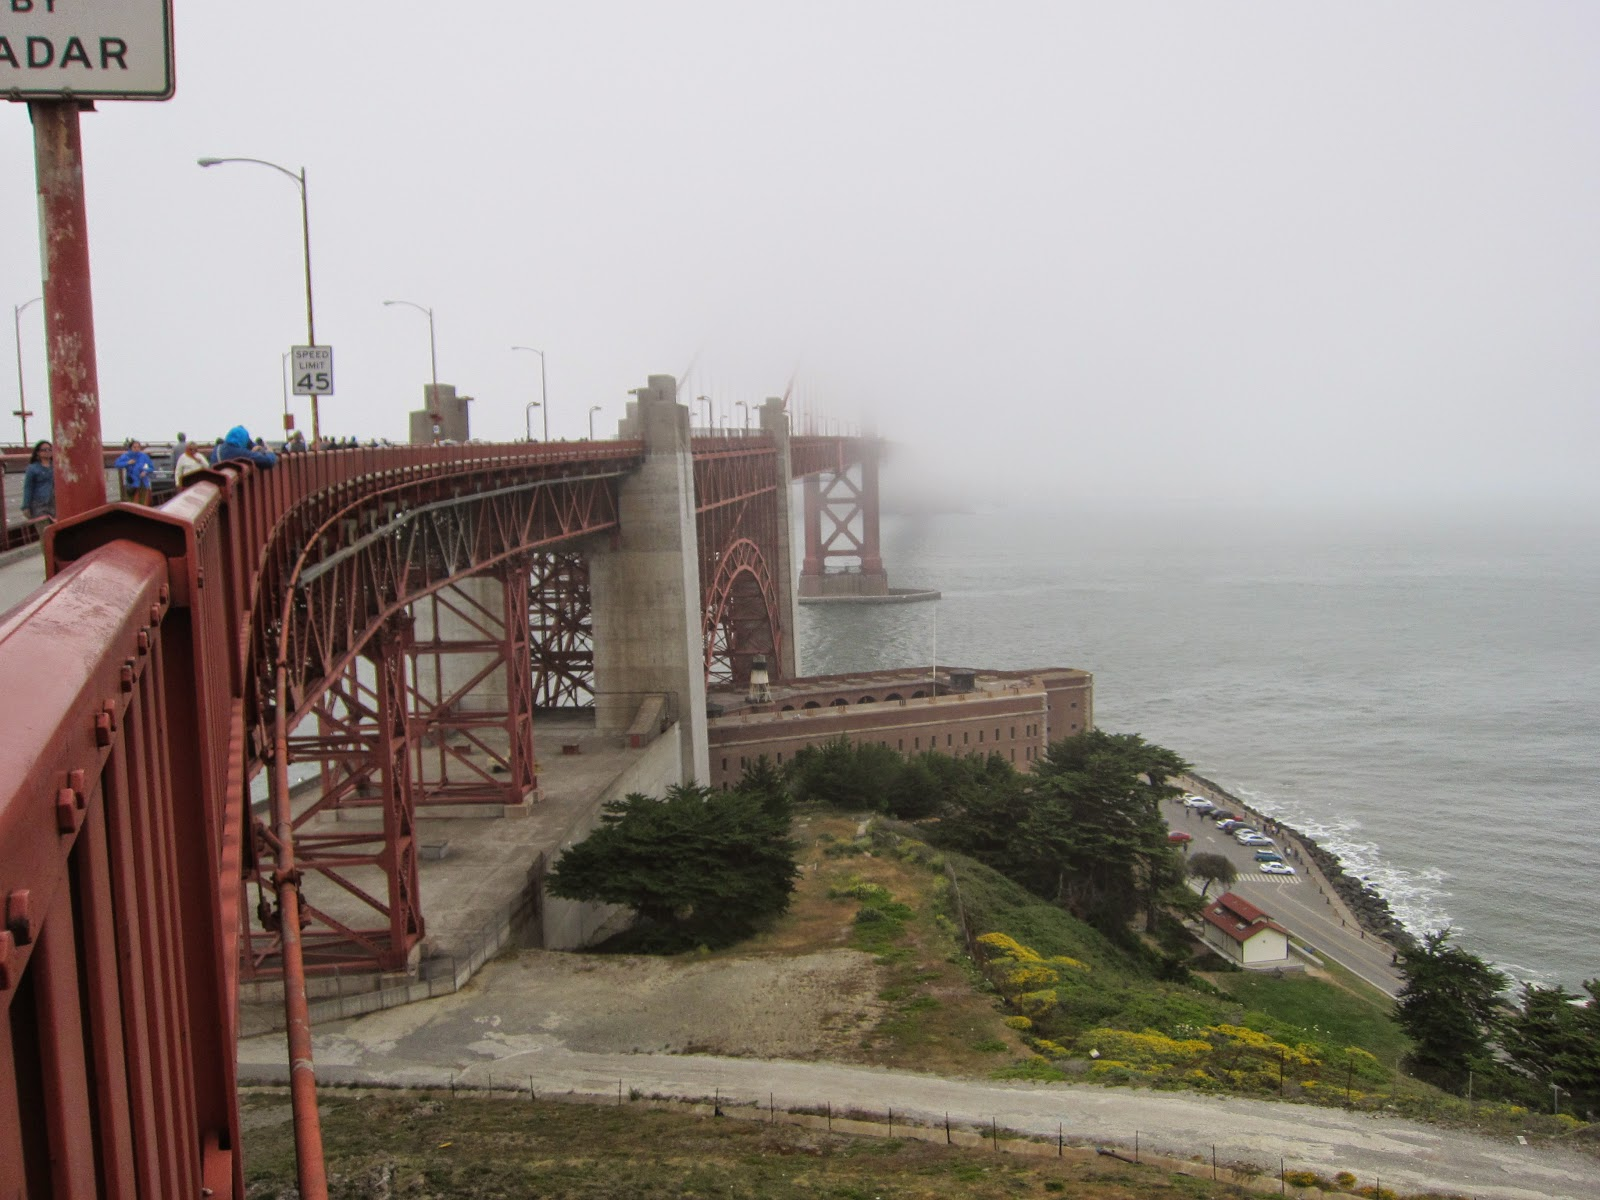 Golden Gate Bridge and Fort Point in the fog